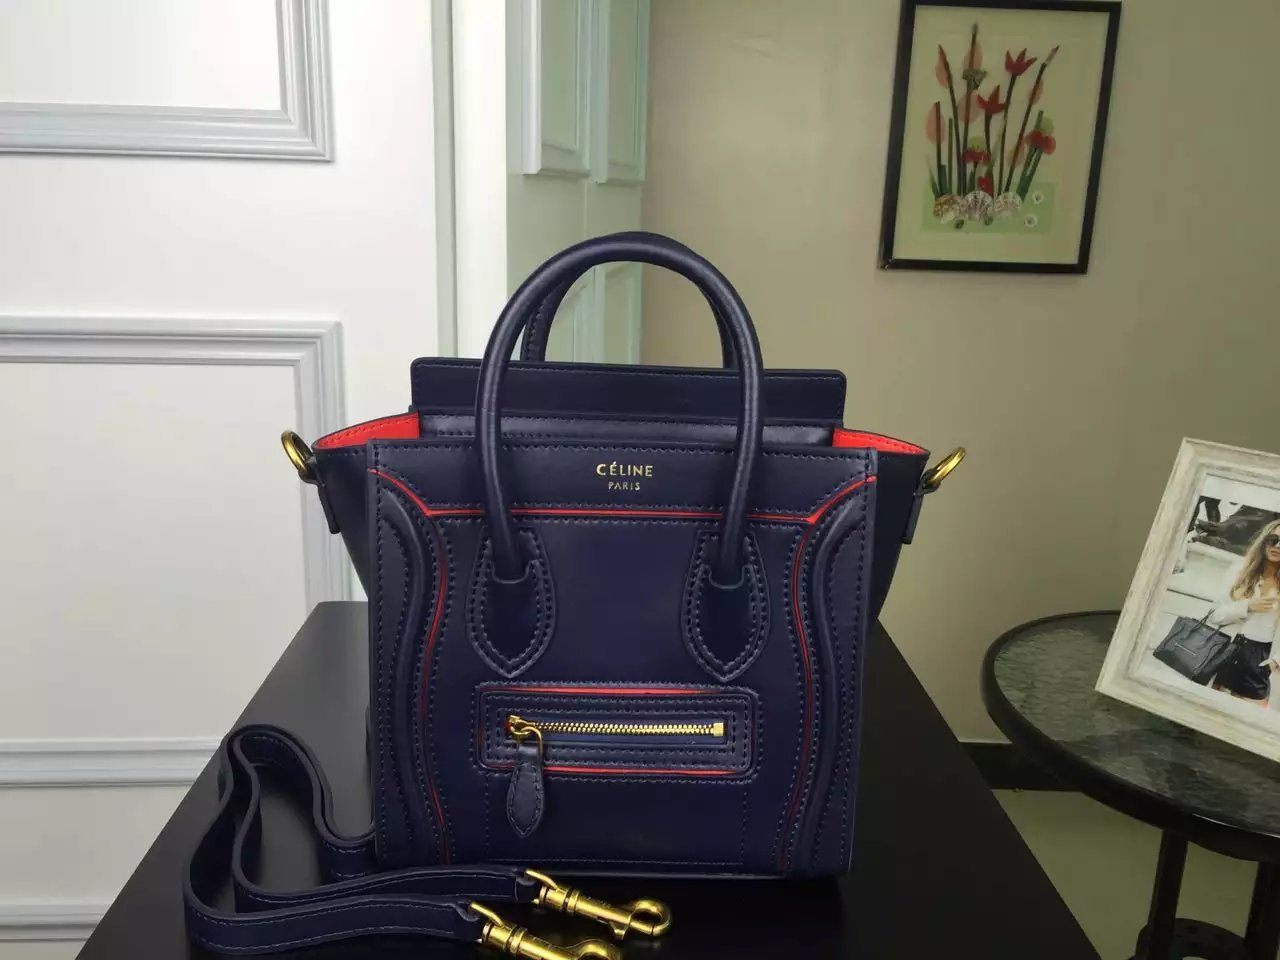 New Arrival Summer2016 Celine Bags Outlet-Celine Nano Luggage Handbag with  Red Interstice in Black Smooth Calfskin 90edc852d7aea